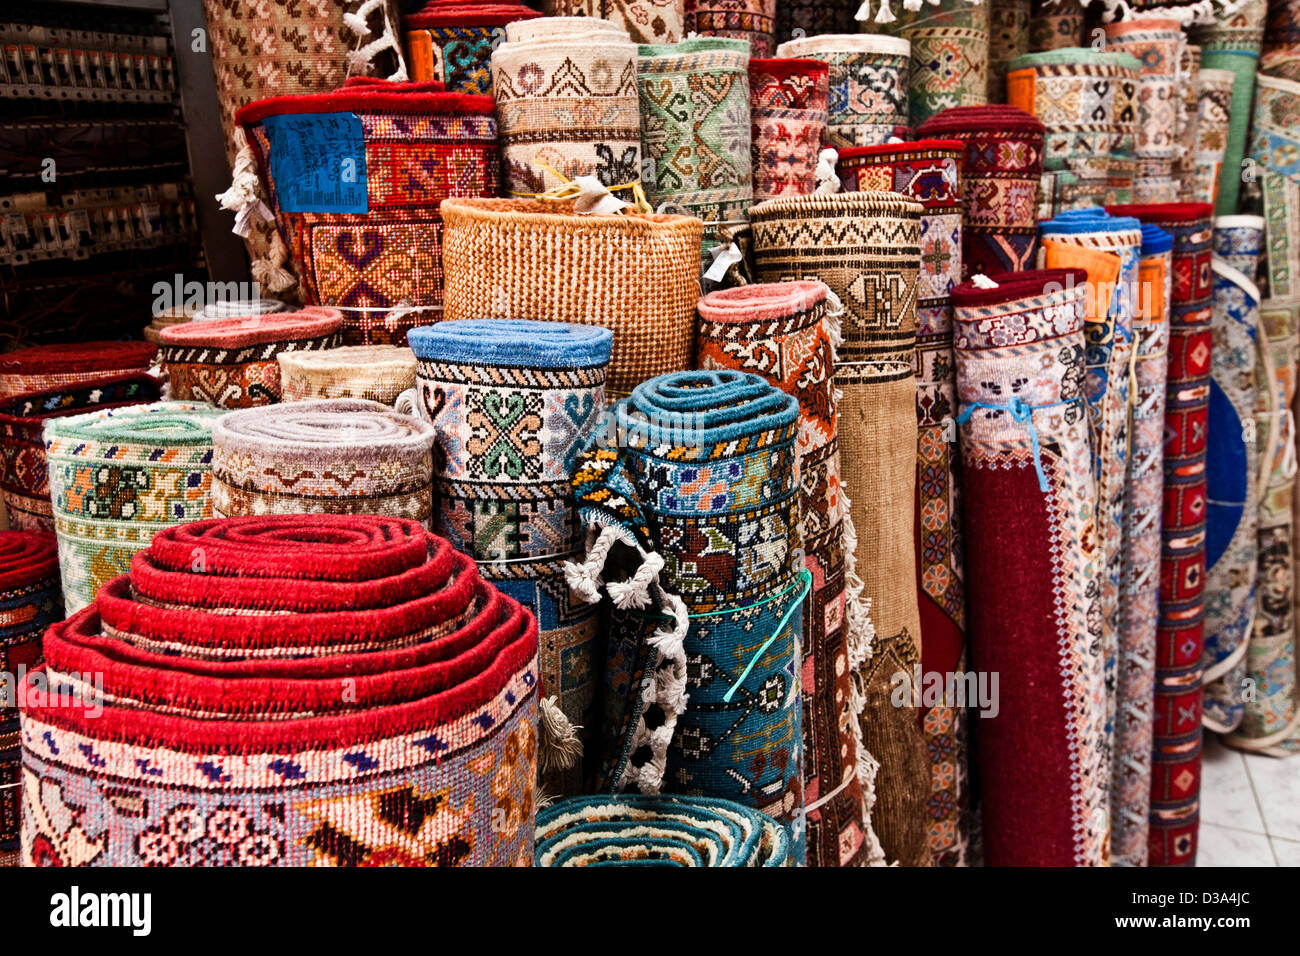 Rugs For Sale In Souk, Marrakech, Morocco